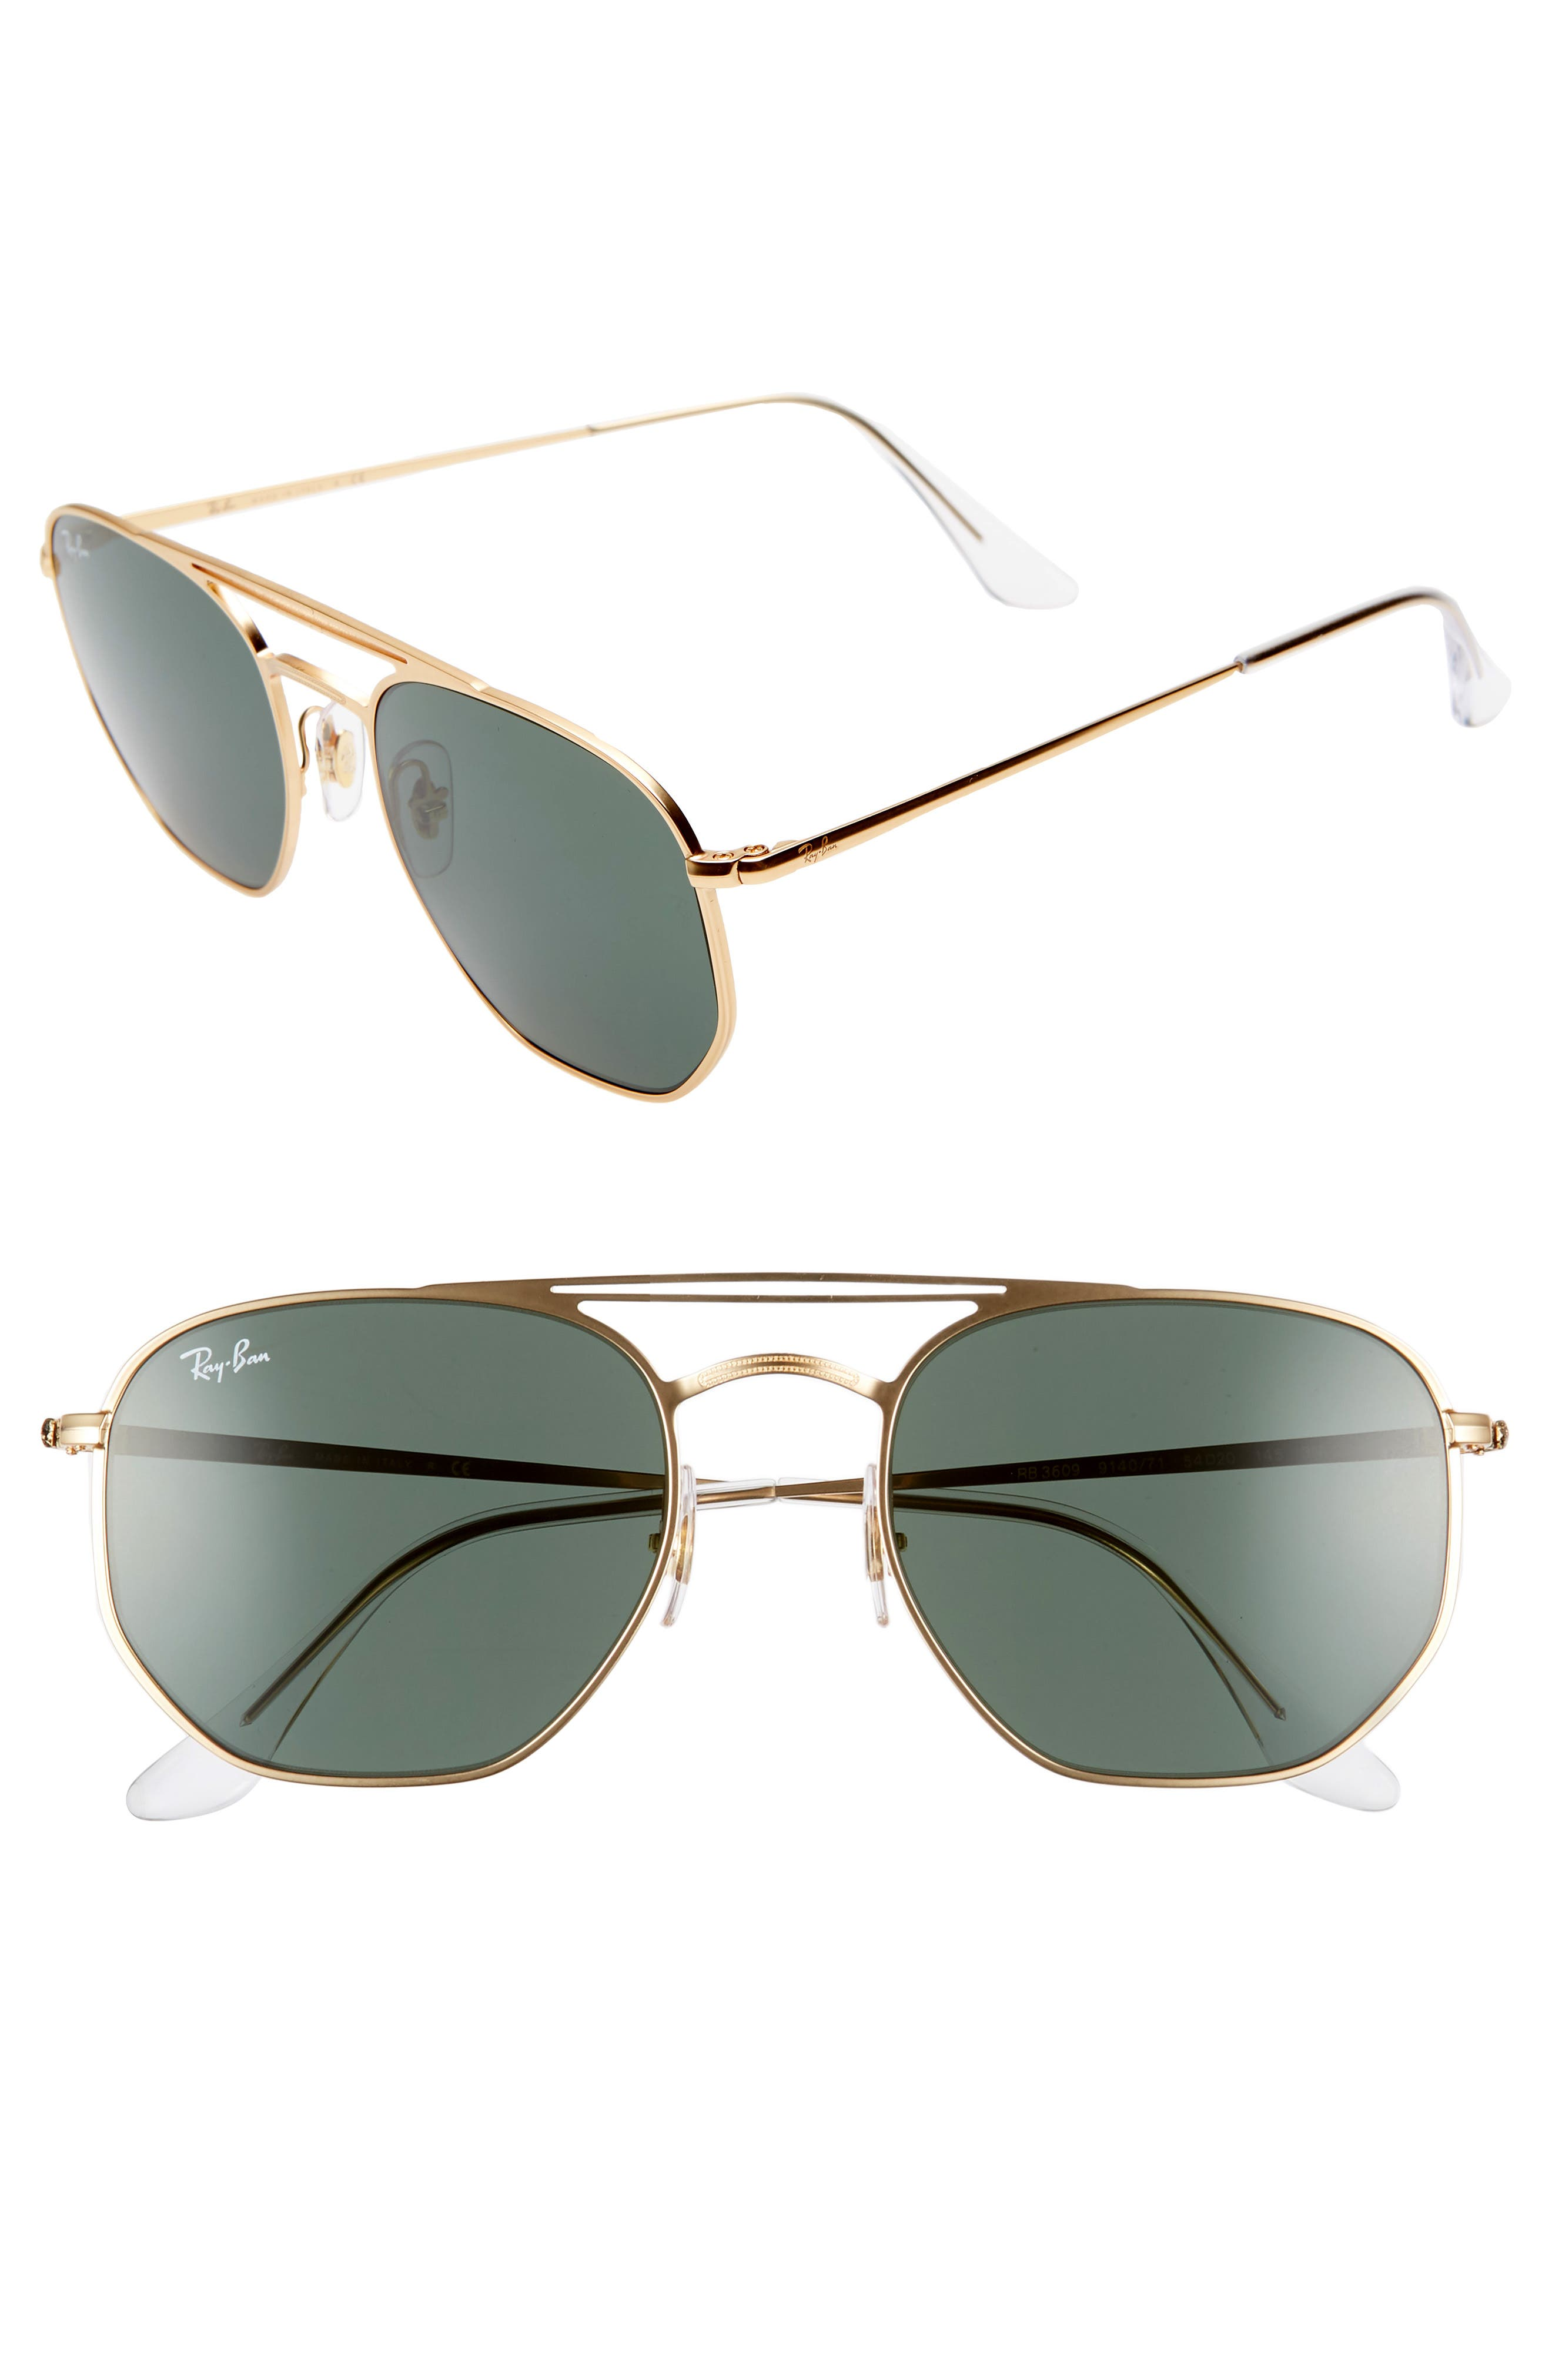 54mm Aviator Sunglasses,                             Main thumbnail 1, color,                             GOLD/ GREEN SOLID